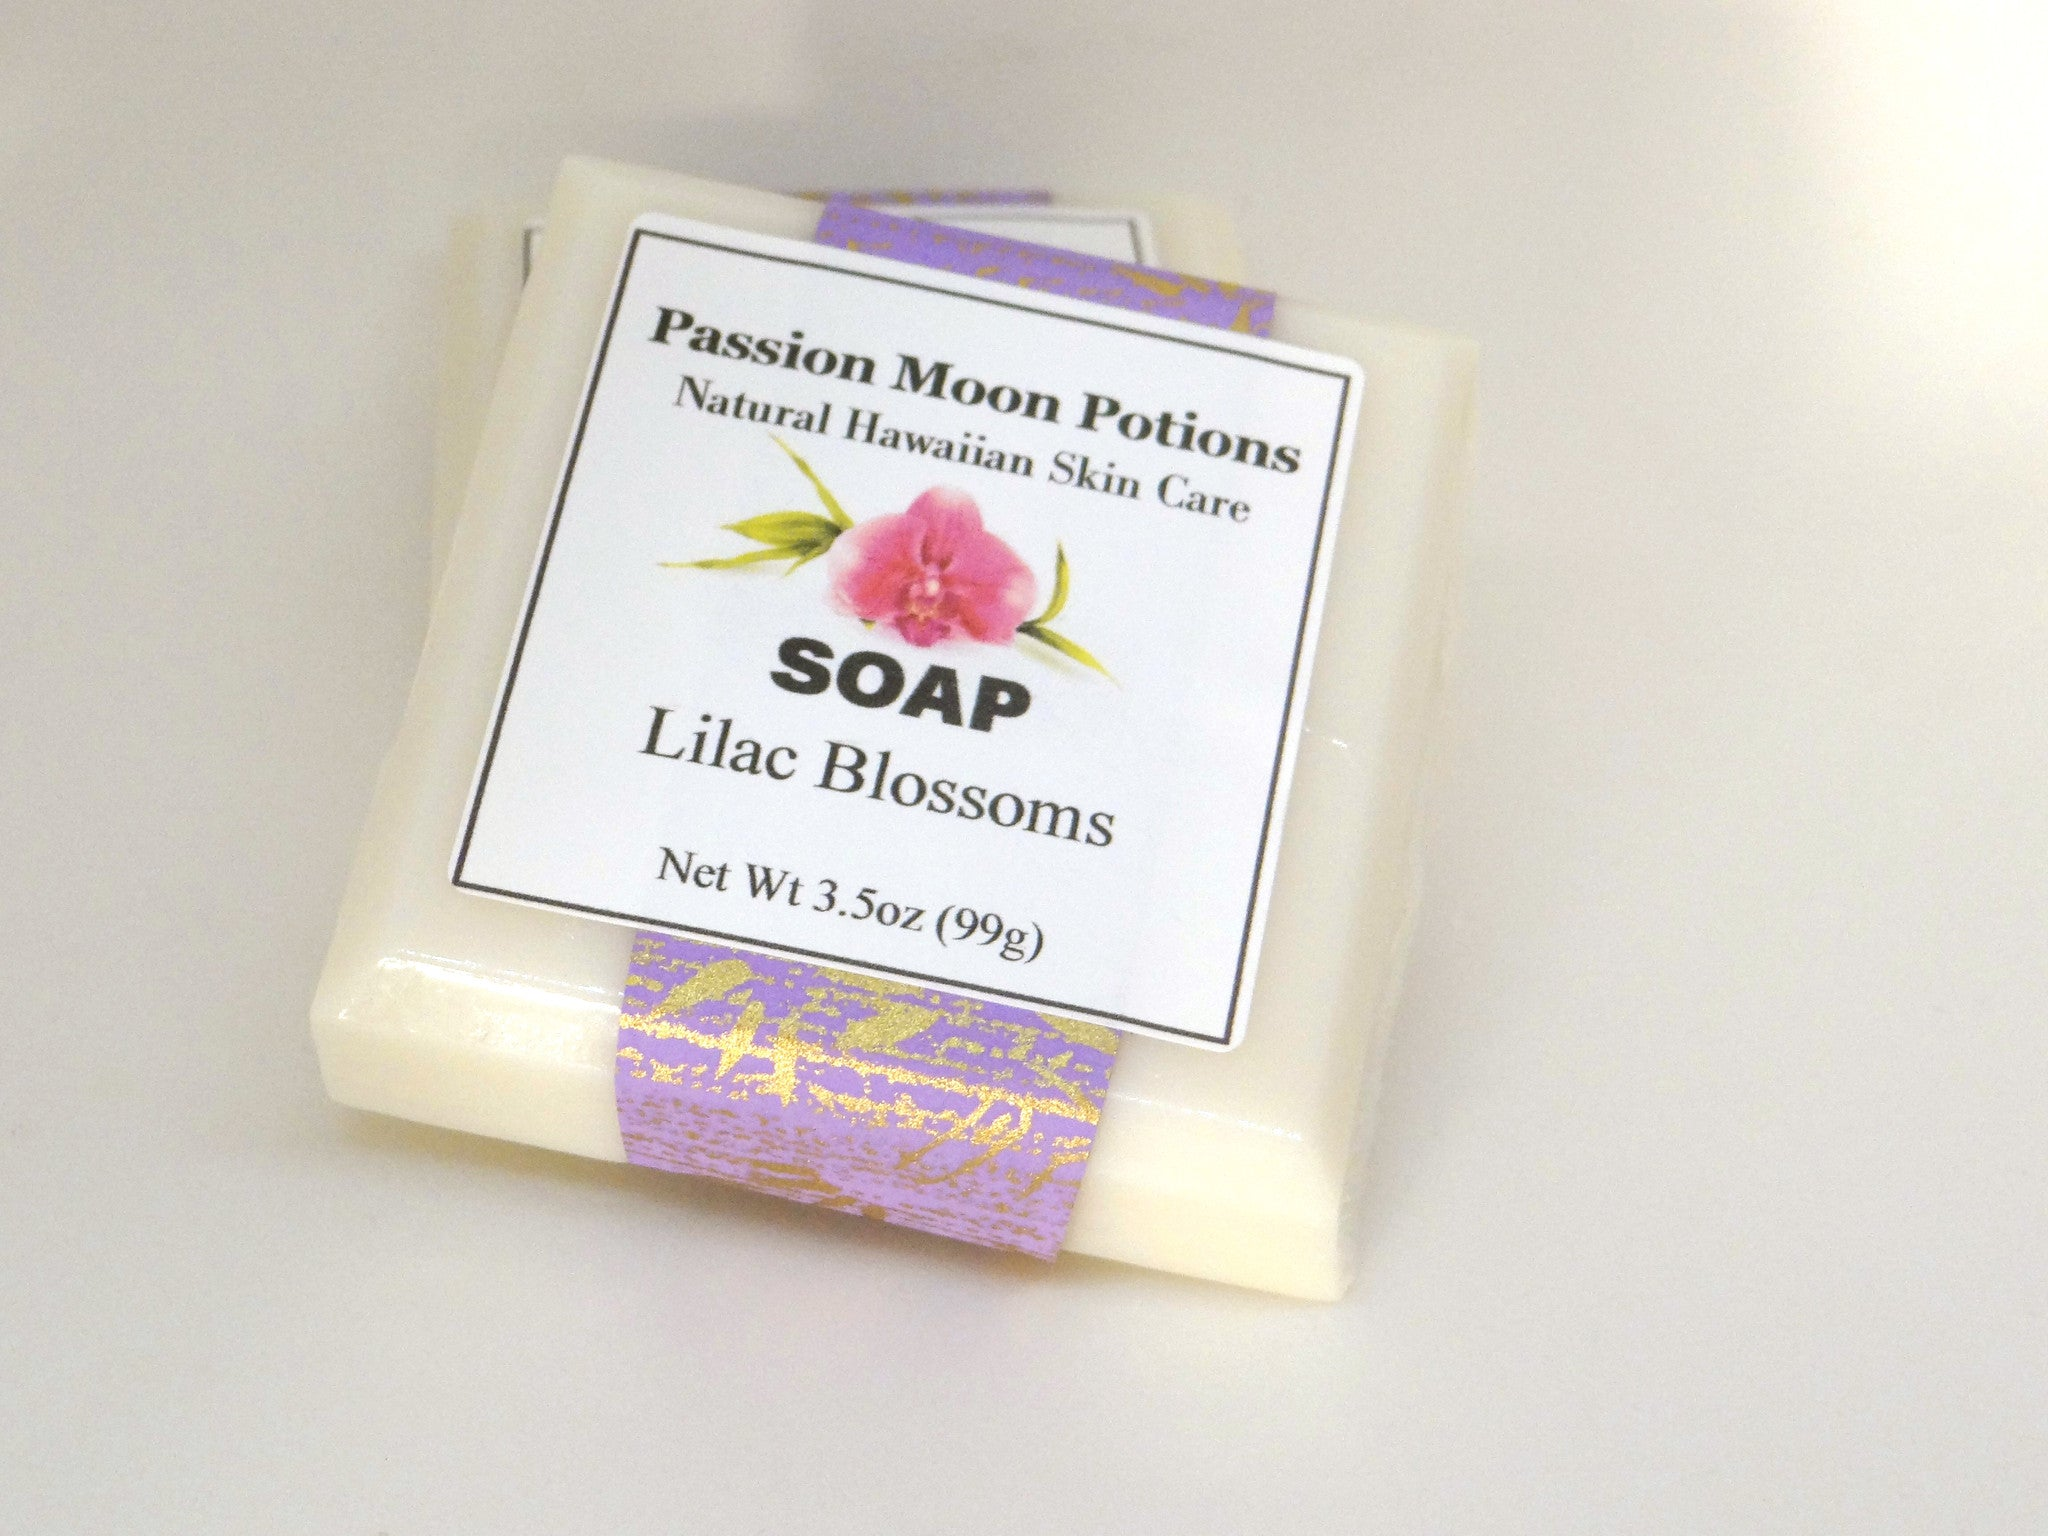 Lilac Blossoms Soap - Passion Moon Potions - 2